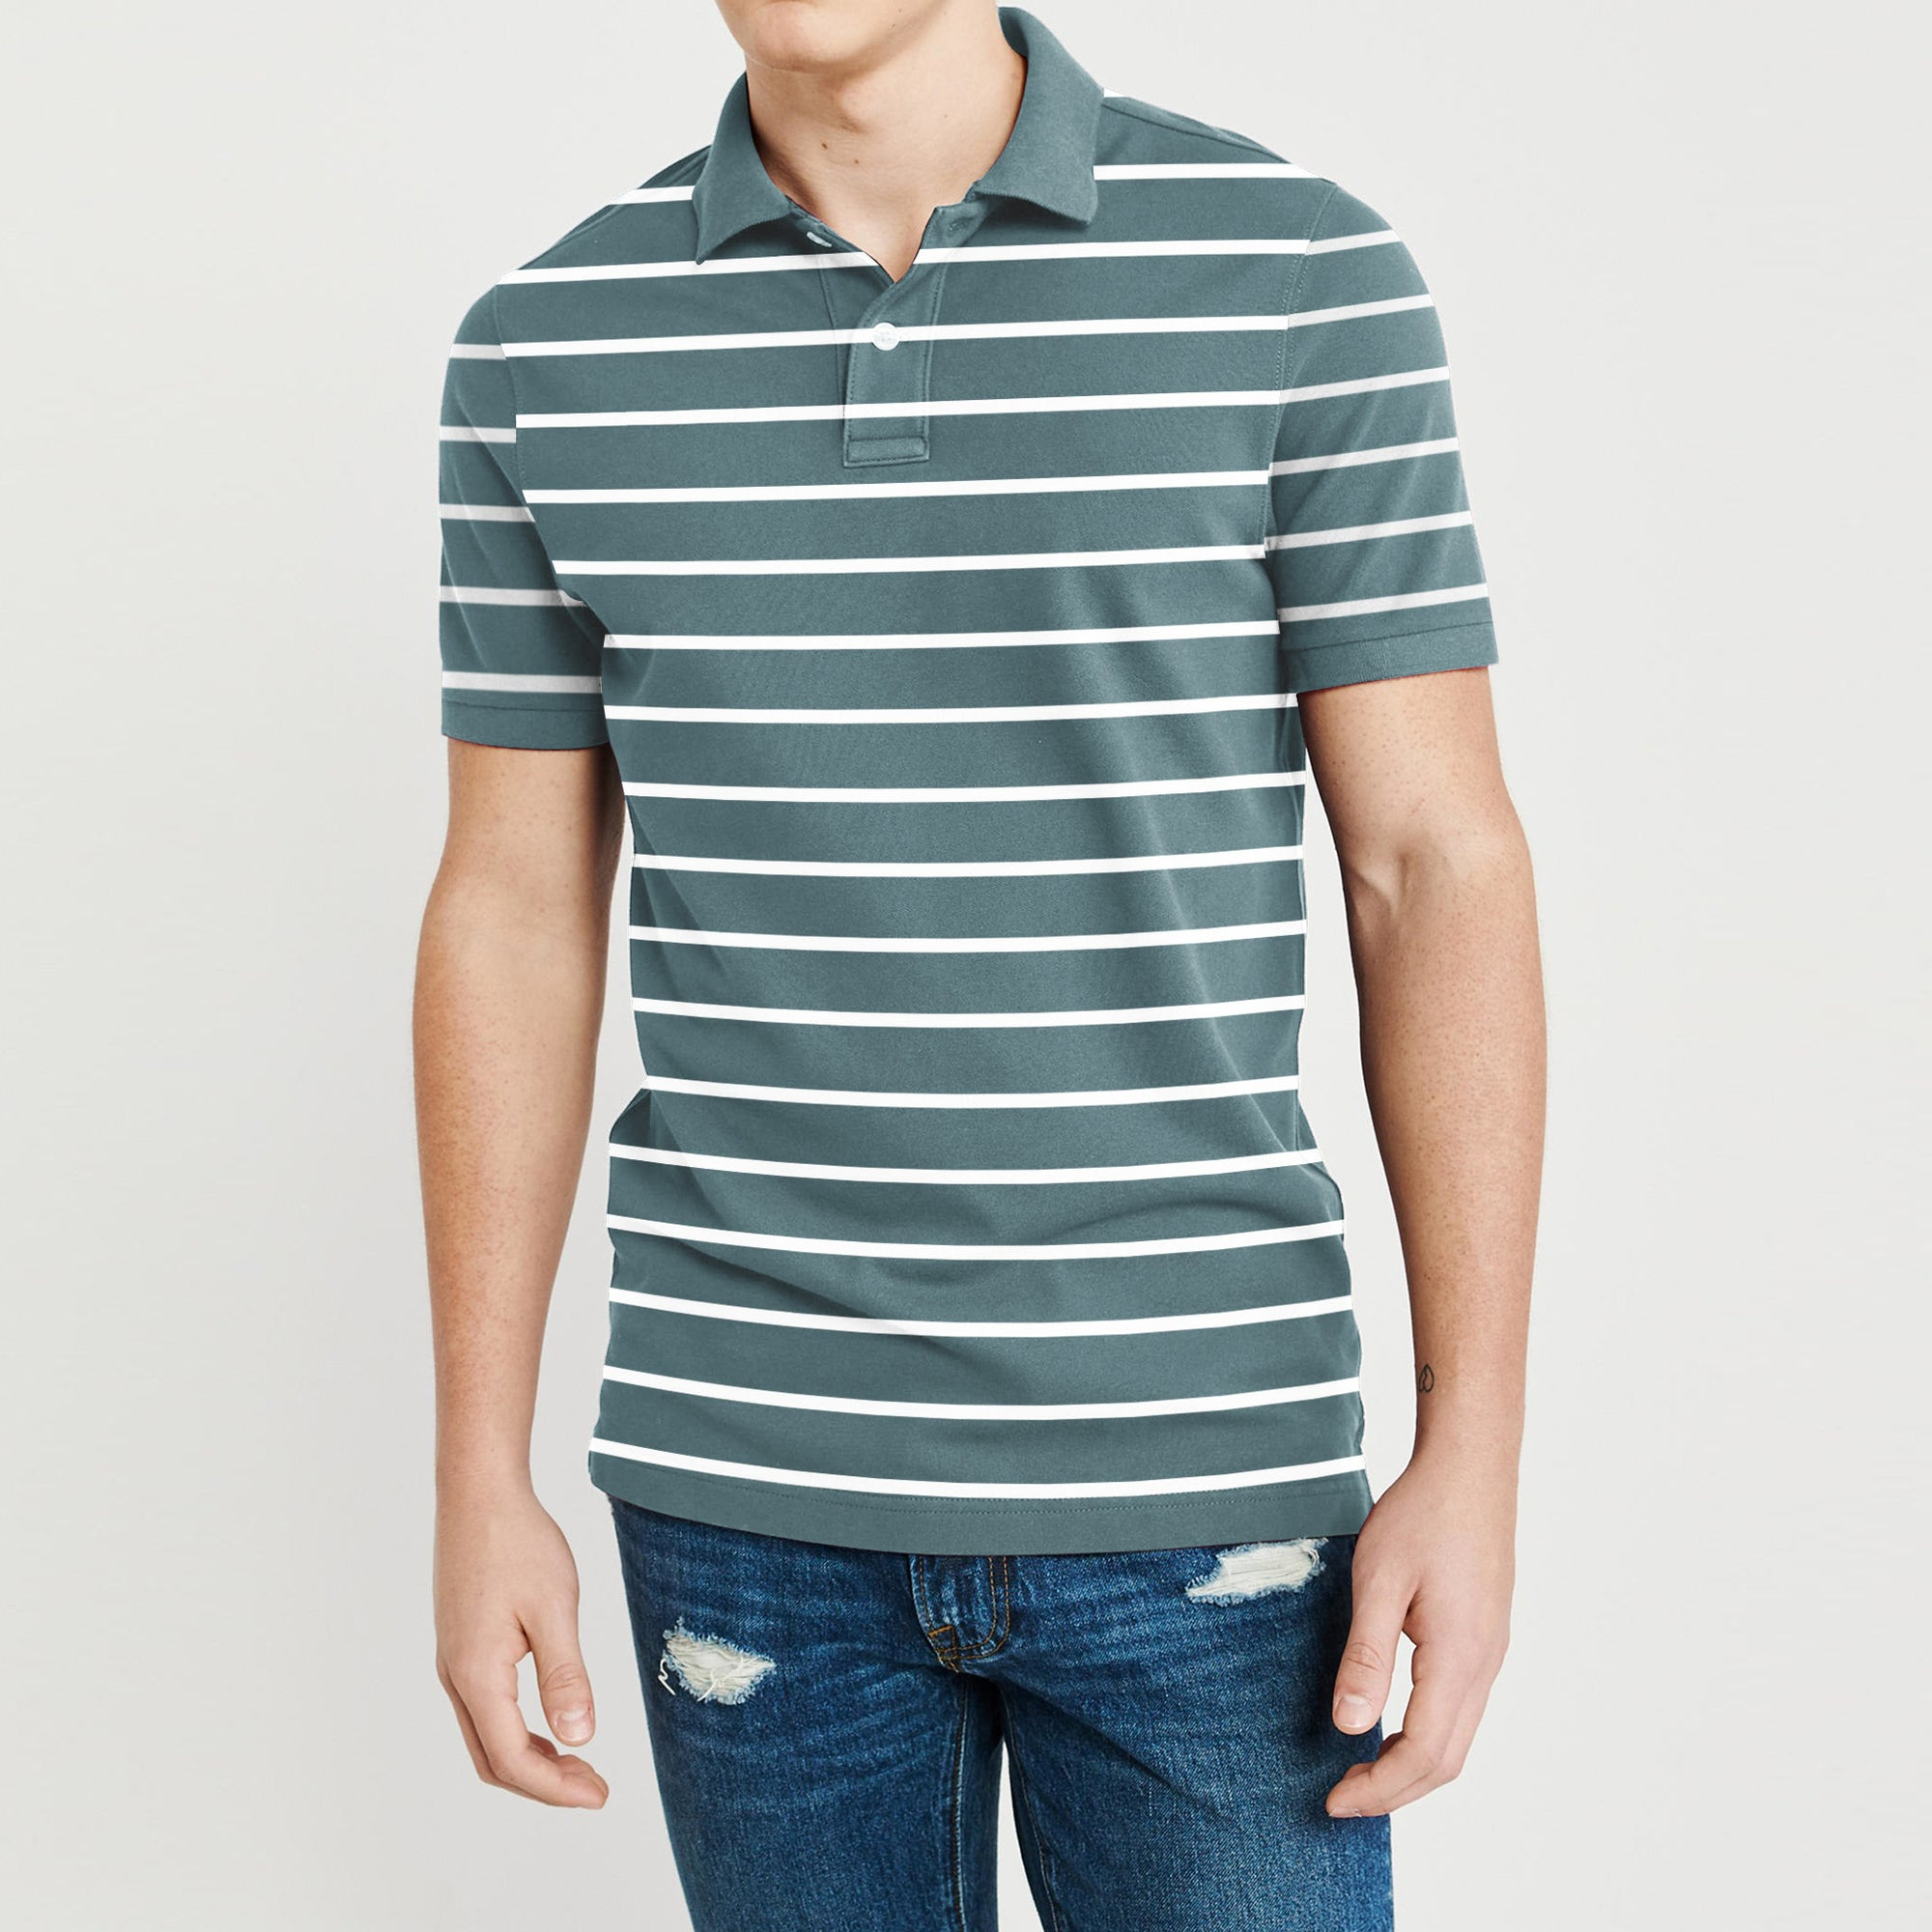 The Modern Short Sleeve P.Q Polo Shirt For Men-Dark Slate Grey & White Stripe-BE8618